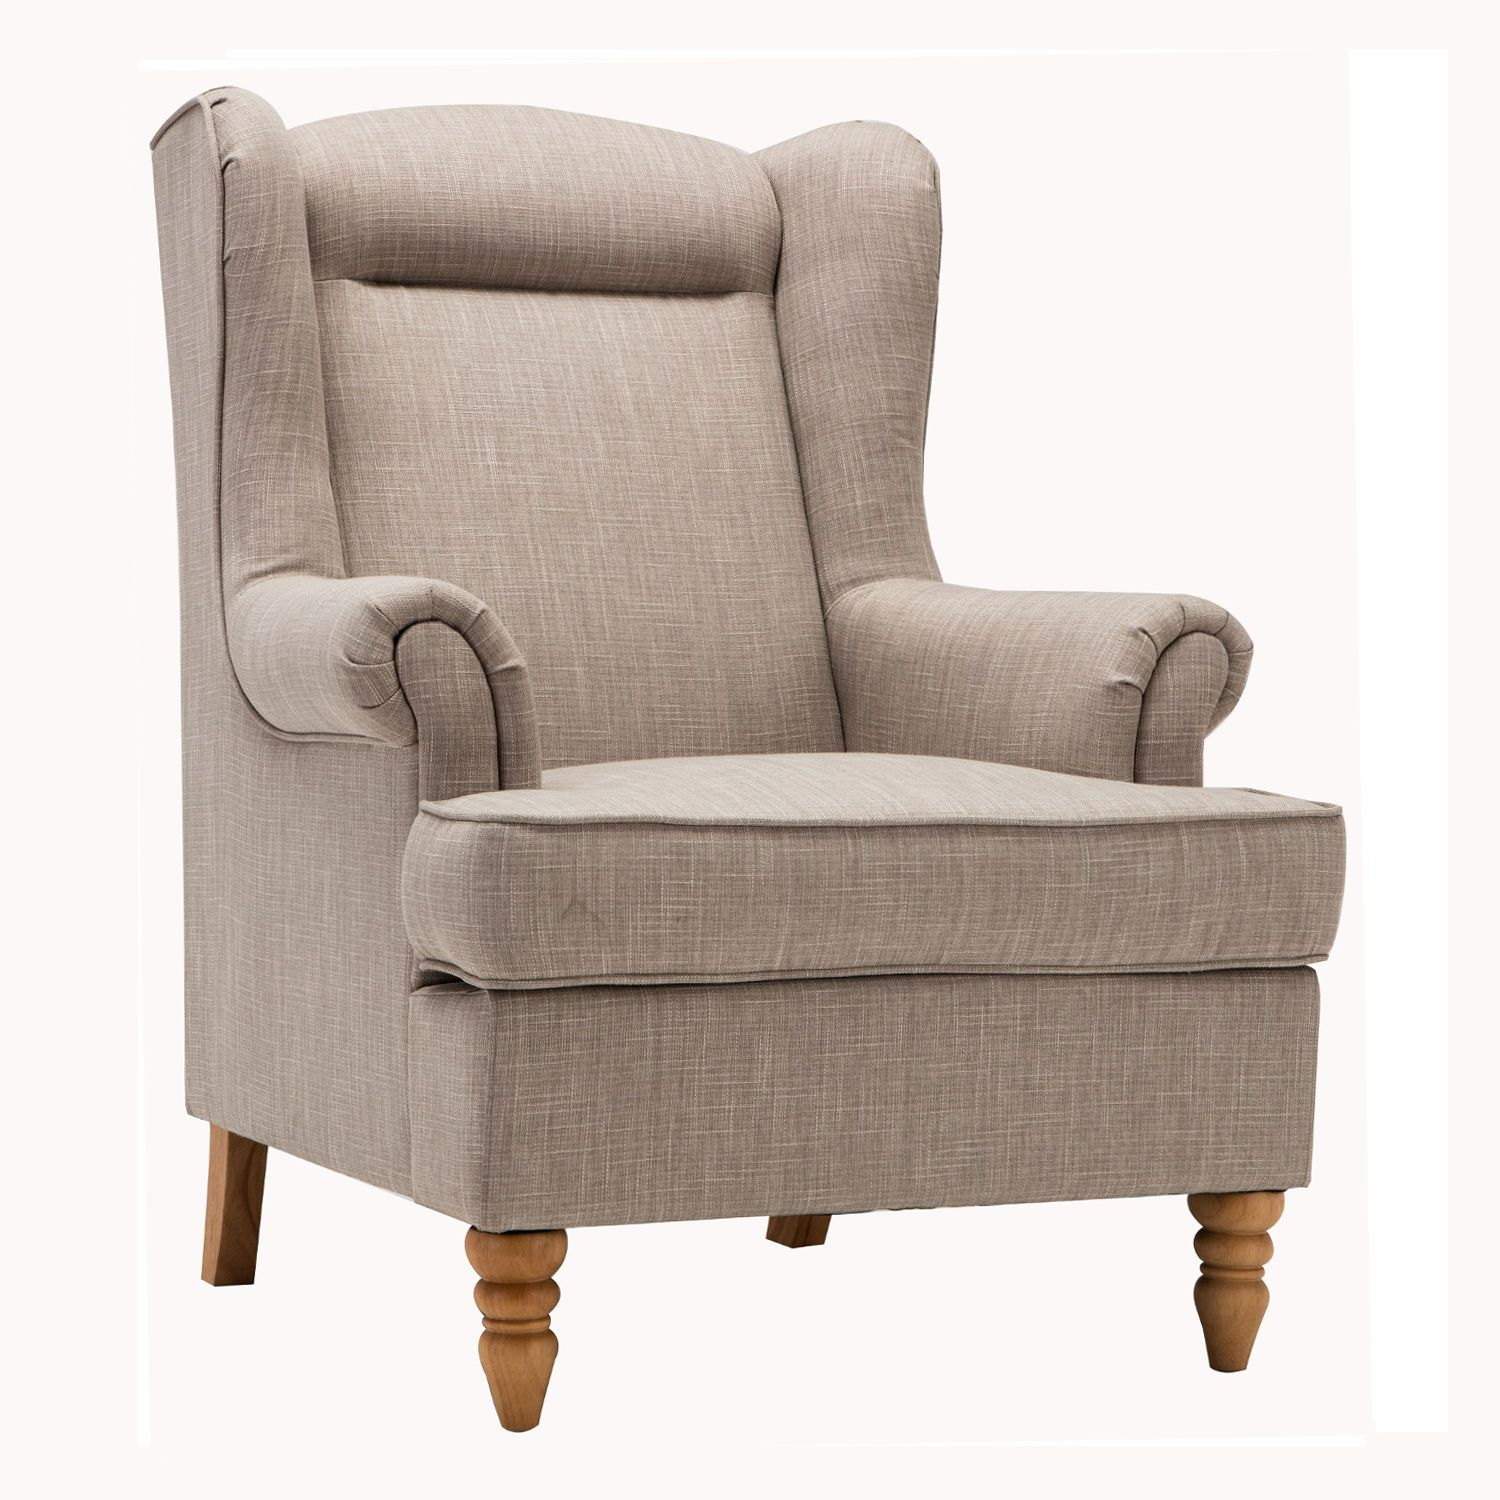 Uk Armchairs Armchairs Armchairs Cheap Armchairs For Sale